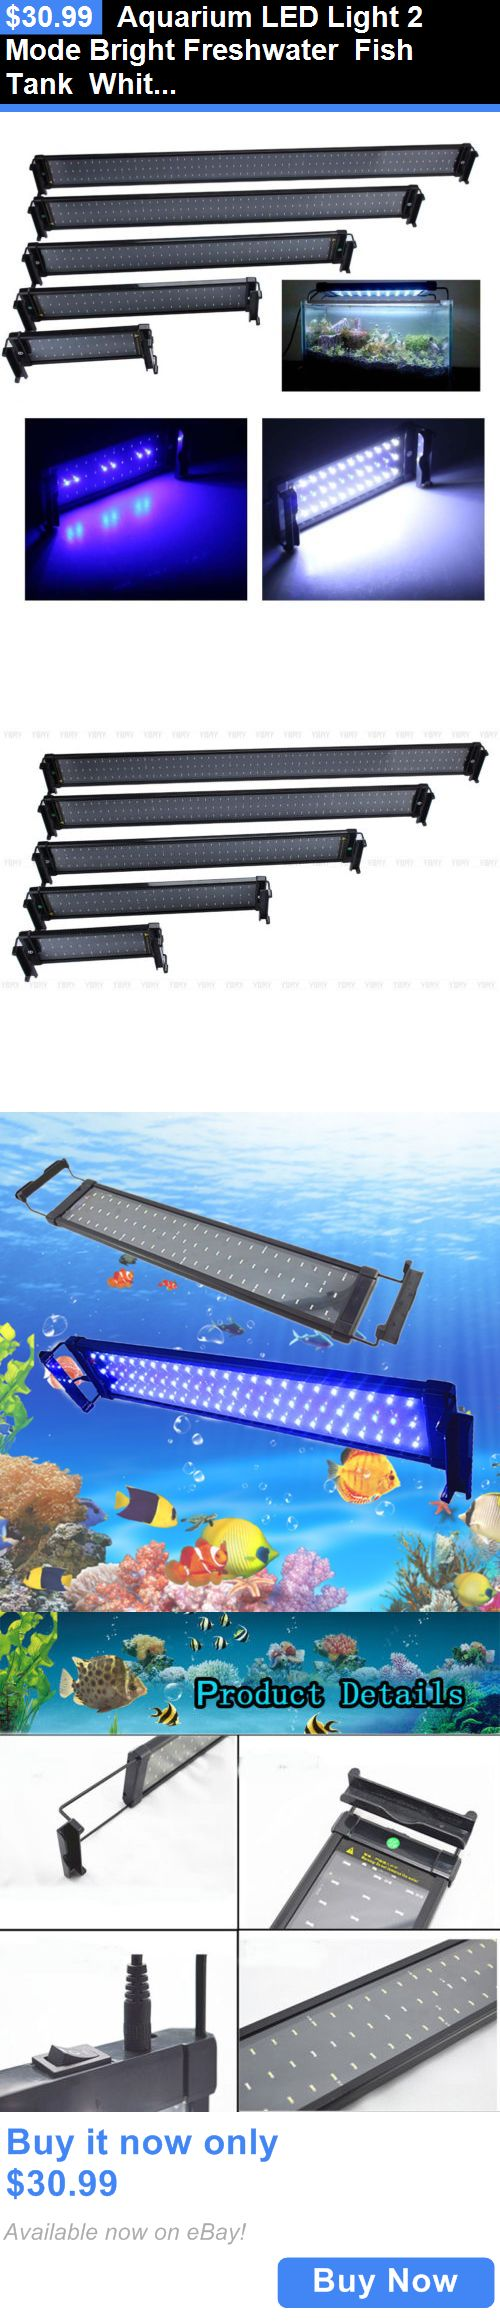 Animals Fish And Aquariums: Aquarium Led Light 2 Mode Bright Freshwater Fish Tank White And Blue Color Light BUY IT NOW ONLY: $30.99